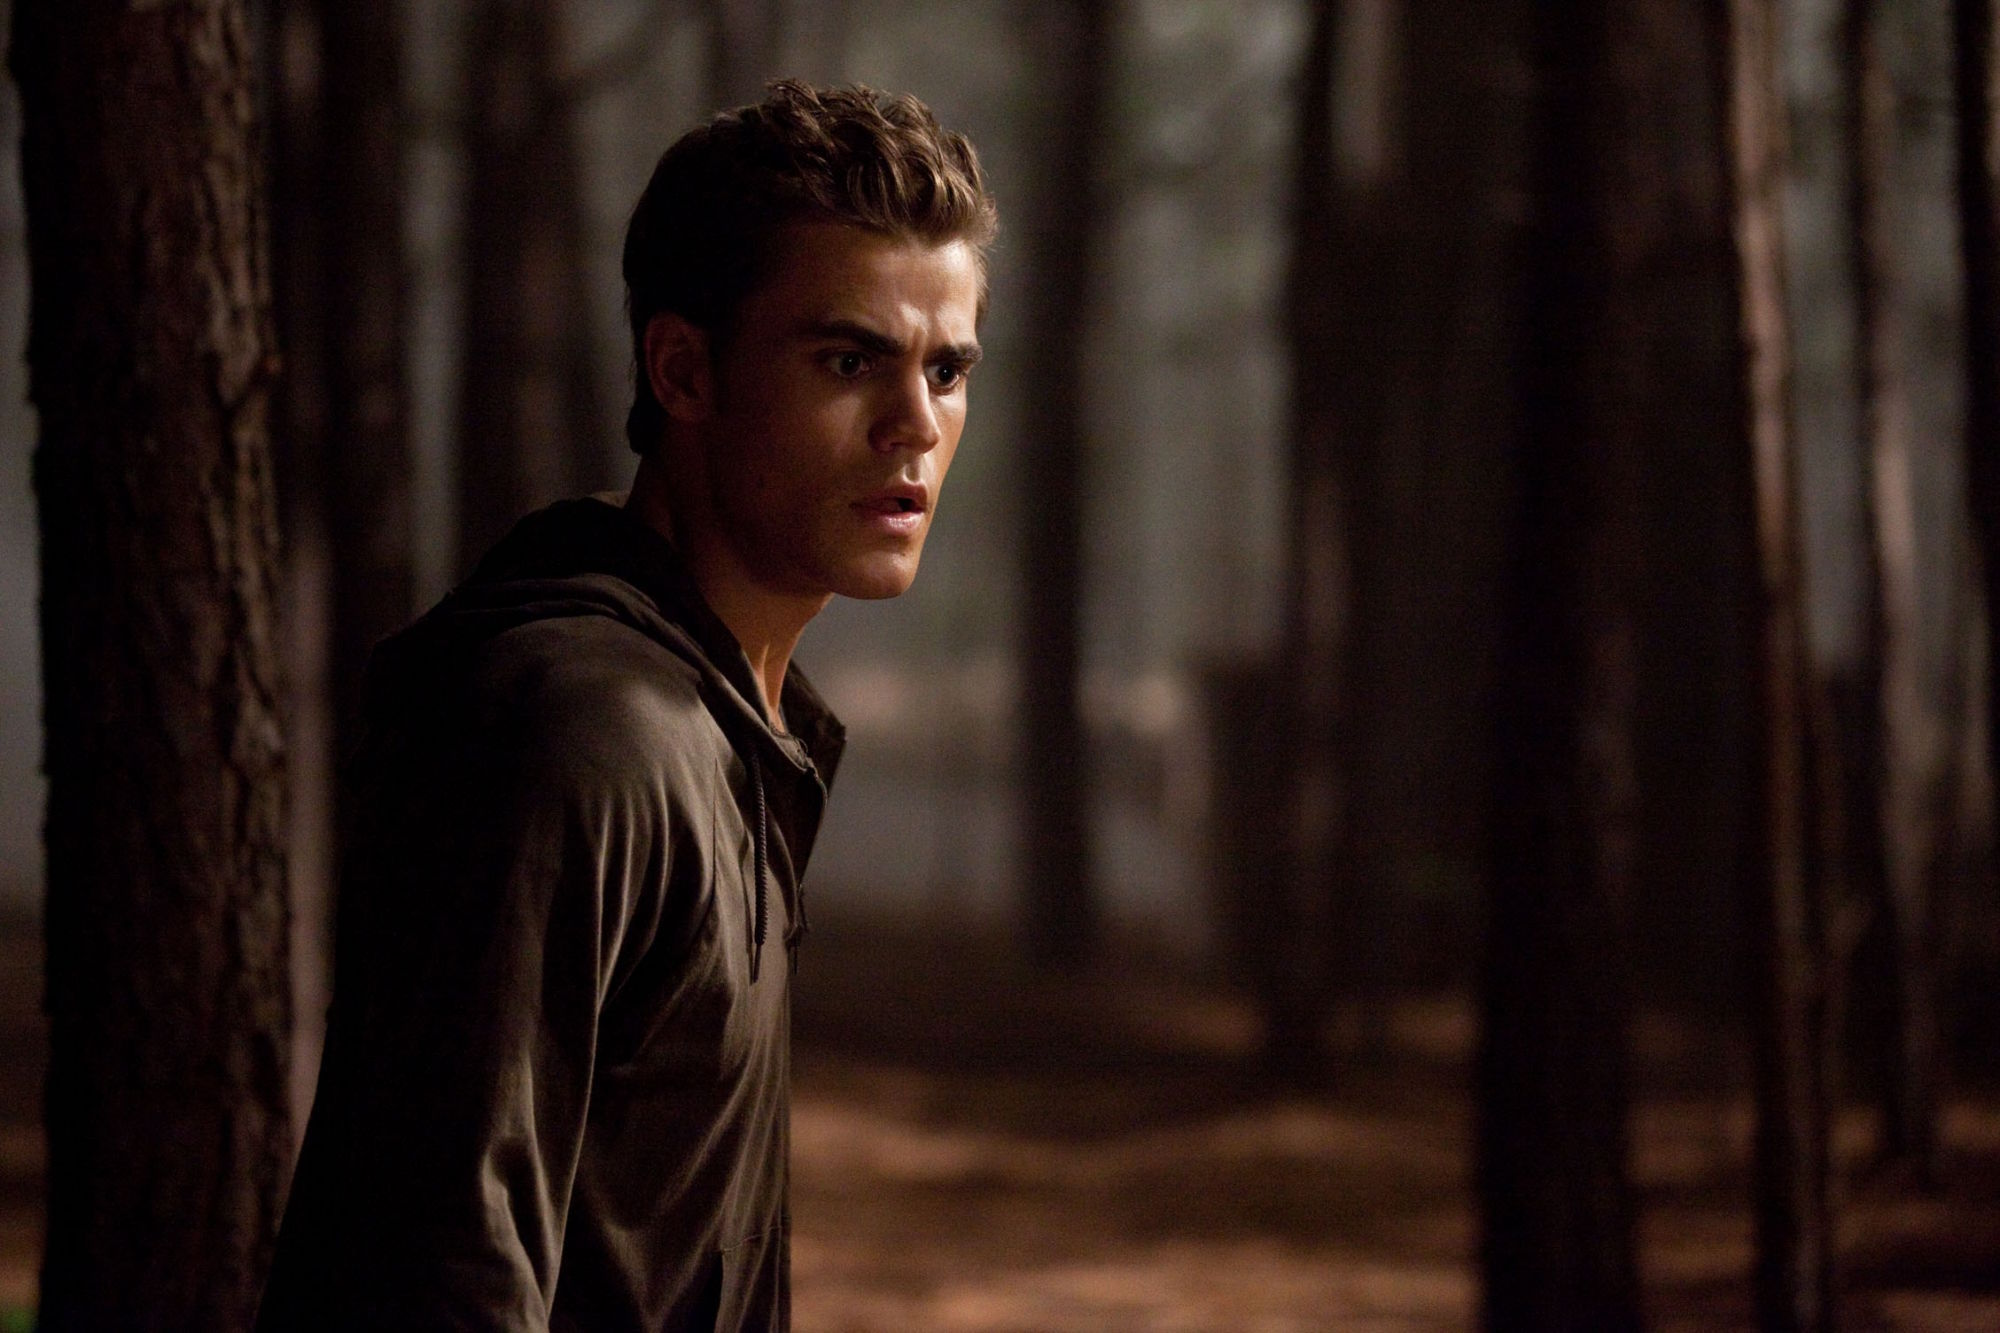 http://images4.fanpop.com/image/photos/15300000/Bad-Moon-Rising-2x03-the-vampire-diaries-tv-show-15391341-2000-1333.jpg